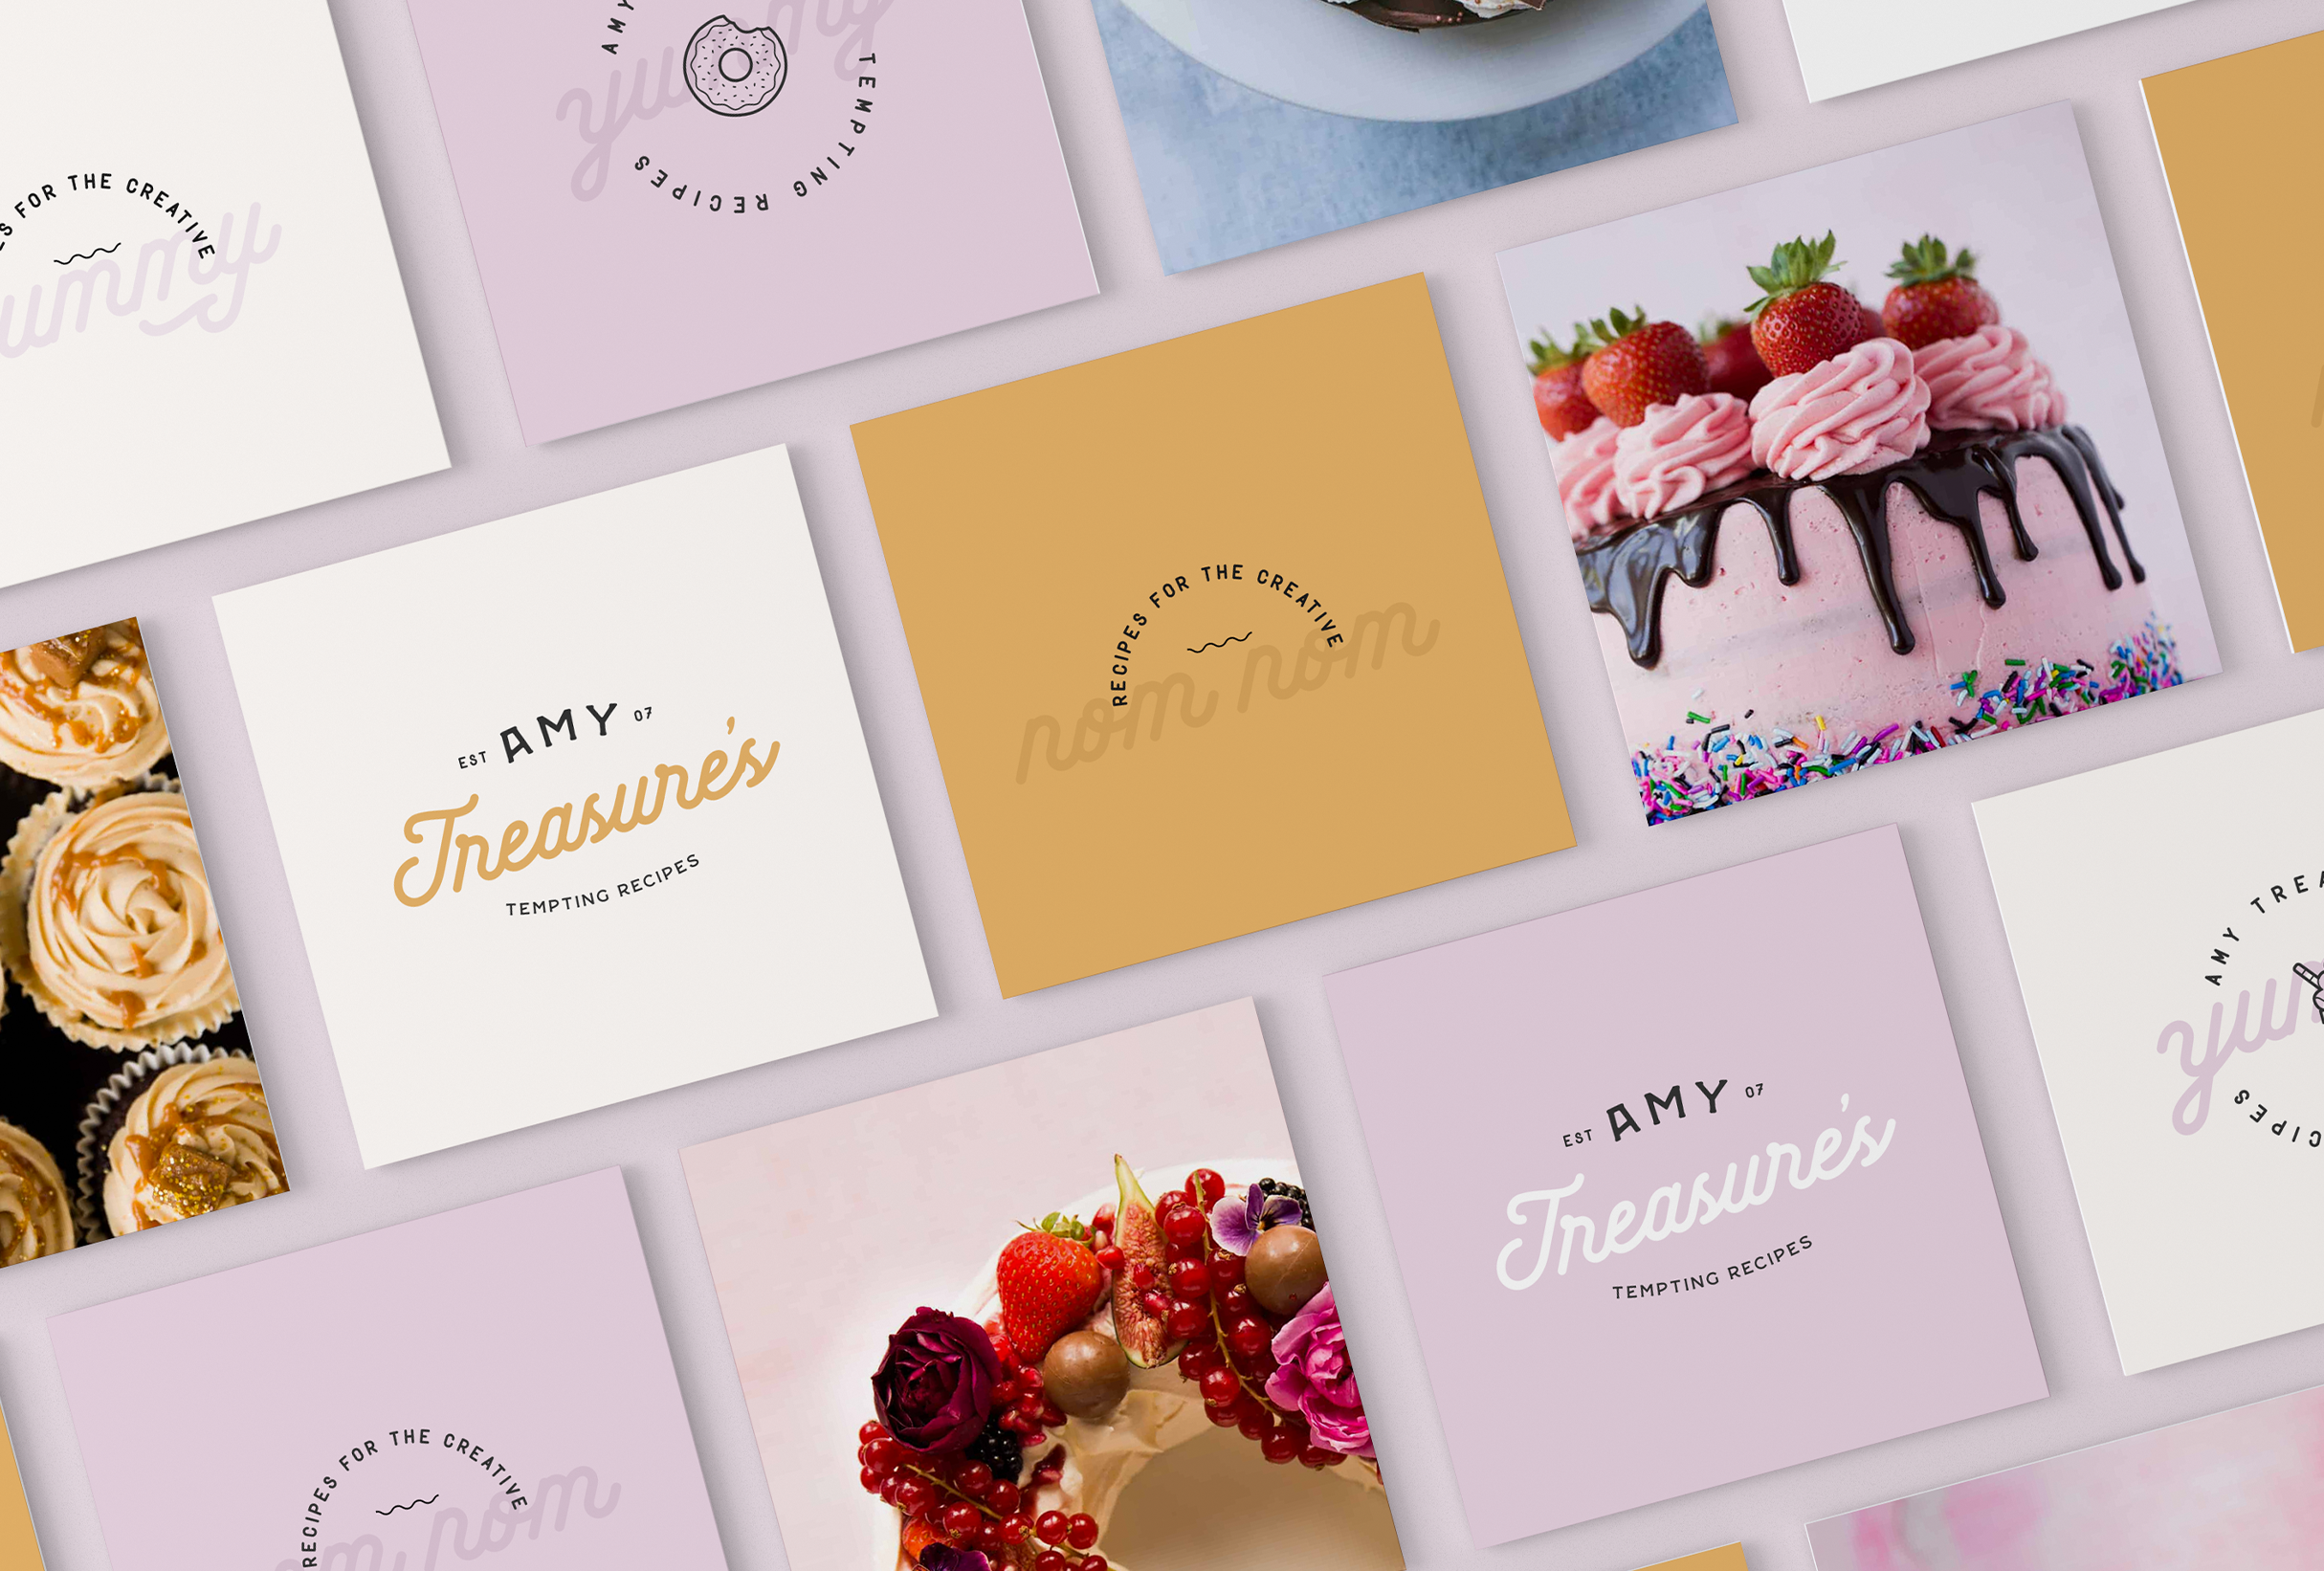 Business card design for Amy Treasure, providing simple yet delicious dessert recipes - designed by Wiltshire-based graphic designer, Kaye Huett